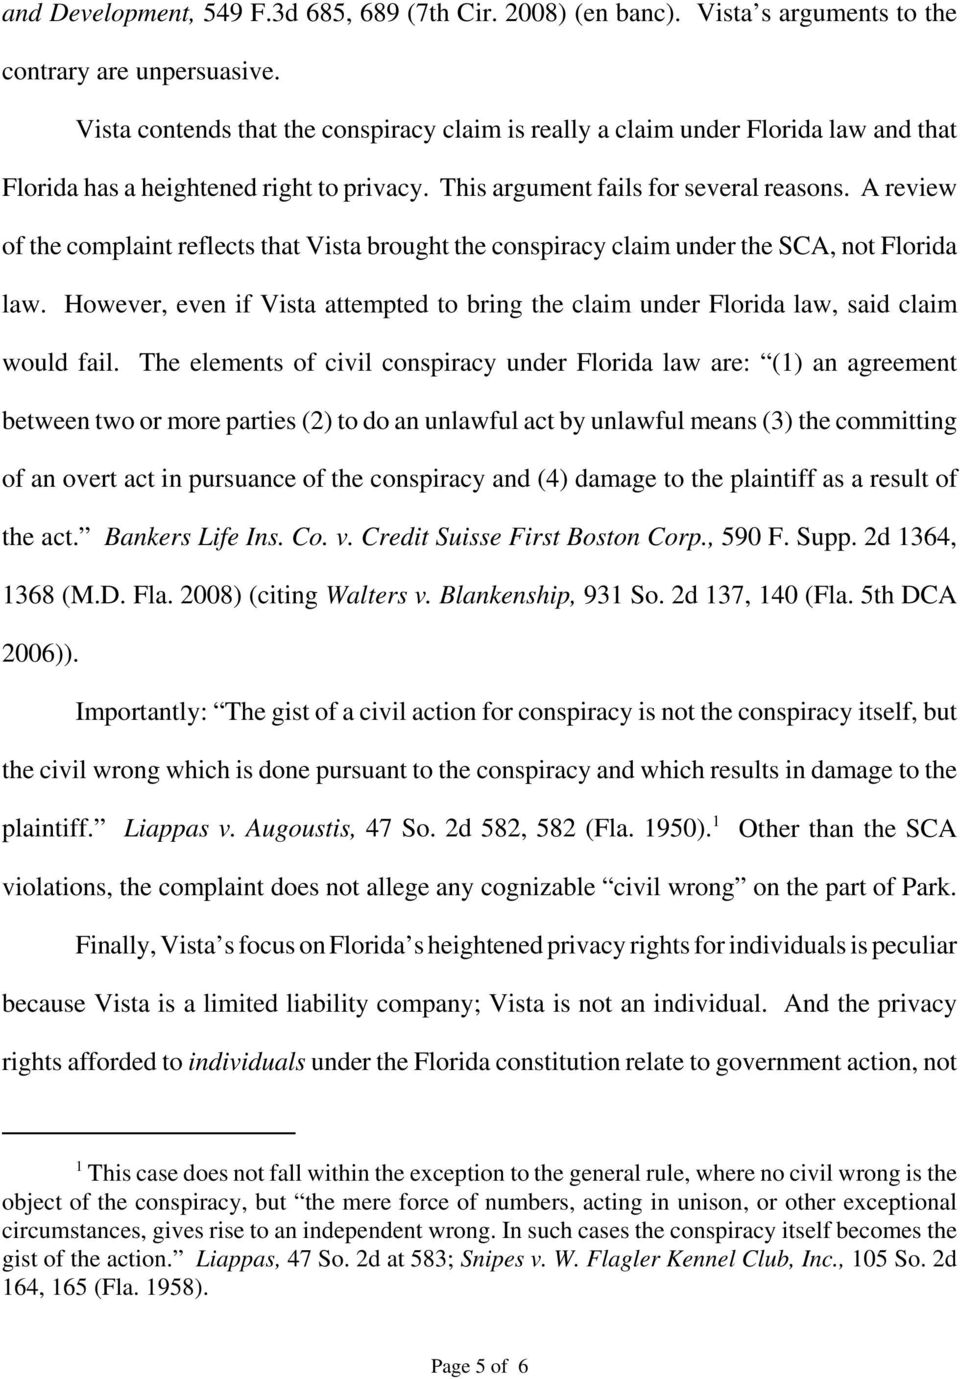 A review of the complaint reflects that Vista brought the conspiracy claim under the SCA, not Florida law. However, even if Vista attempted to bring the claim under Florida law, said claim would fail.